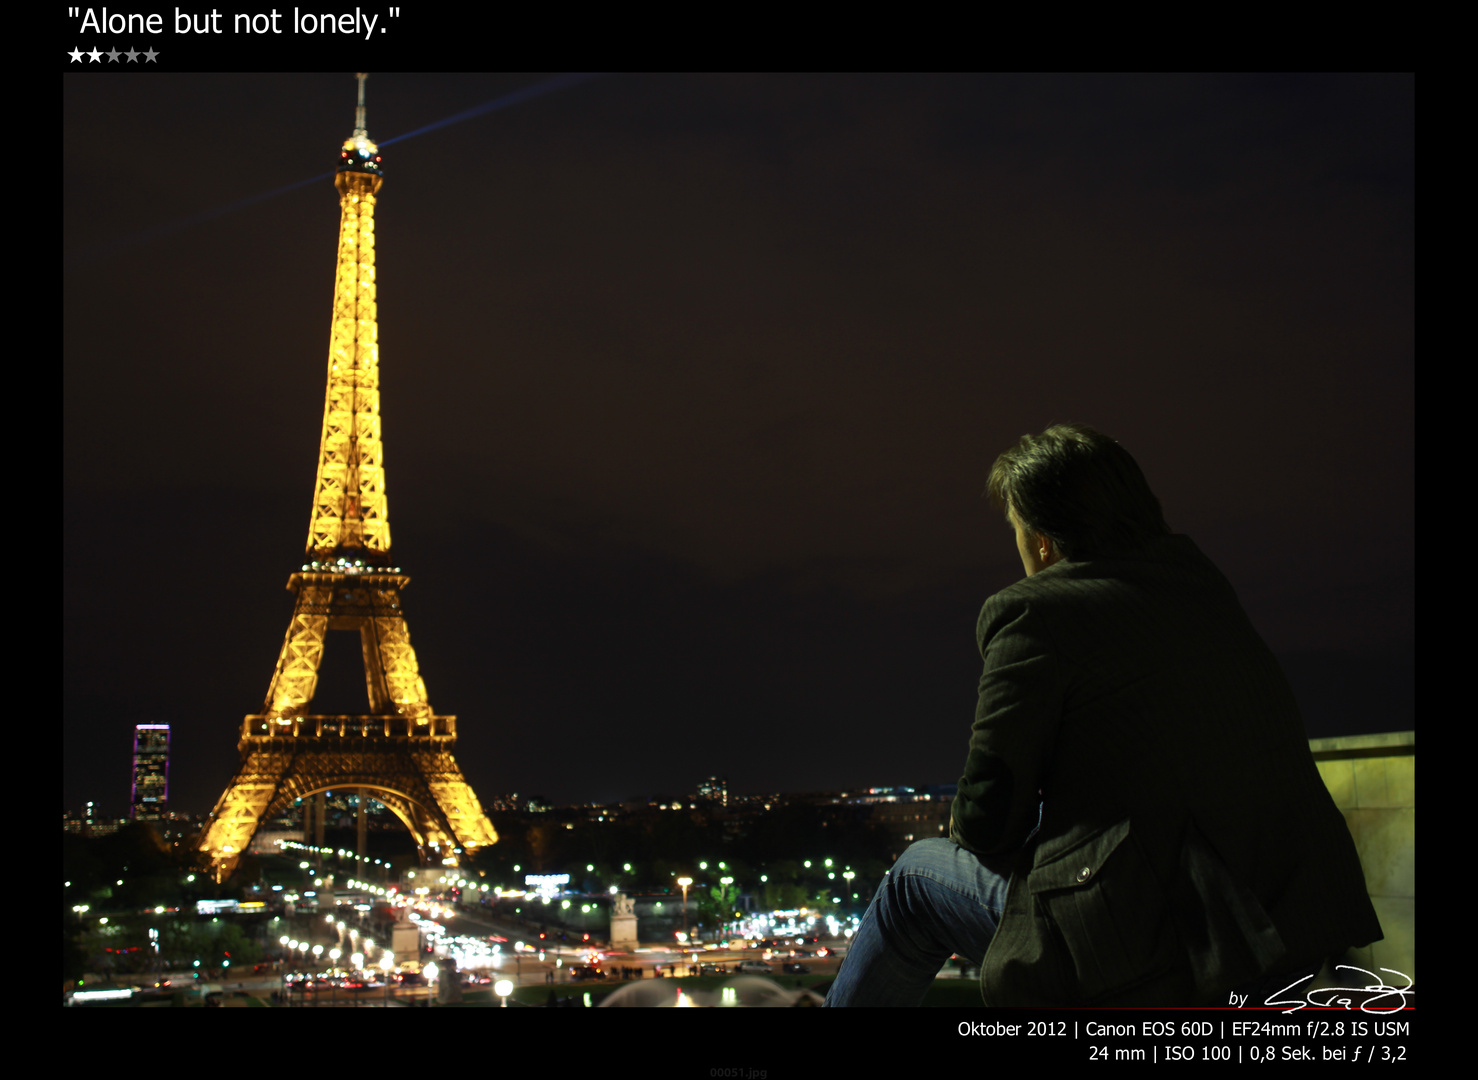 Alone but not lonely!